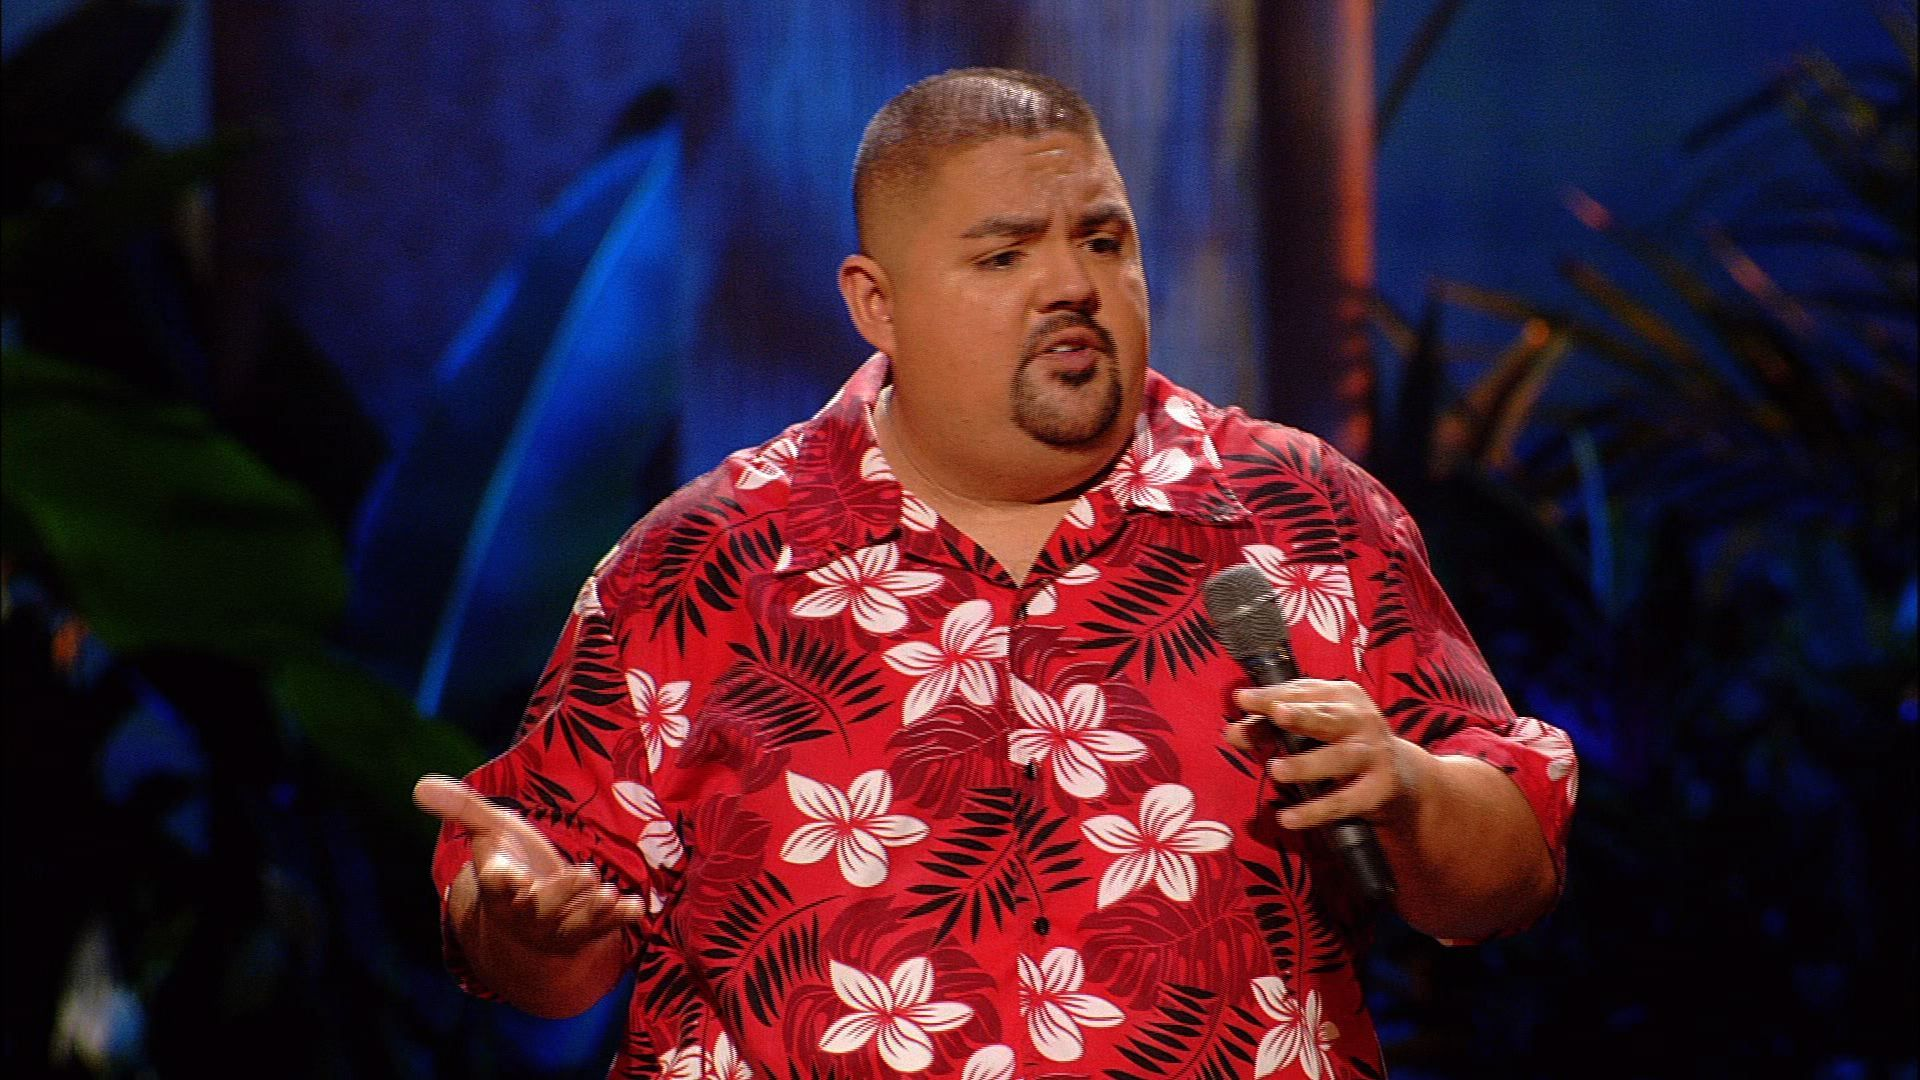 Gabriel Iglesias All That - Viewing Gallery